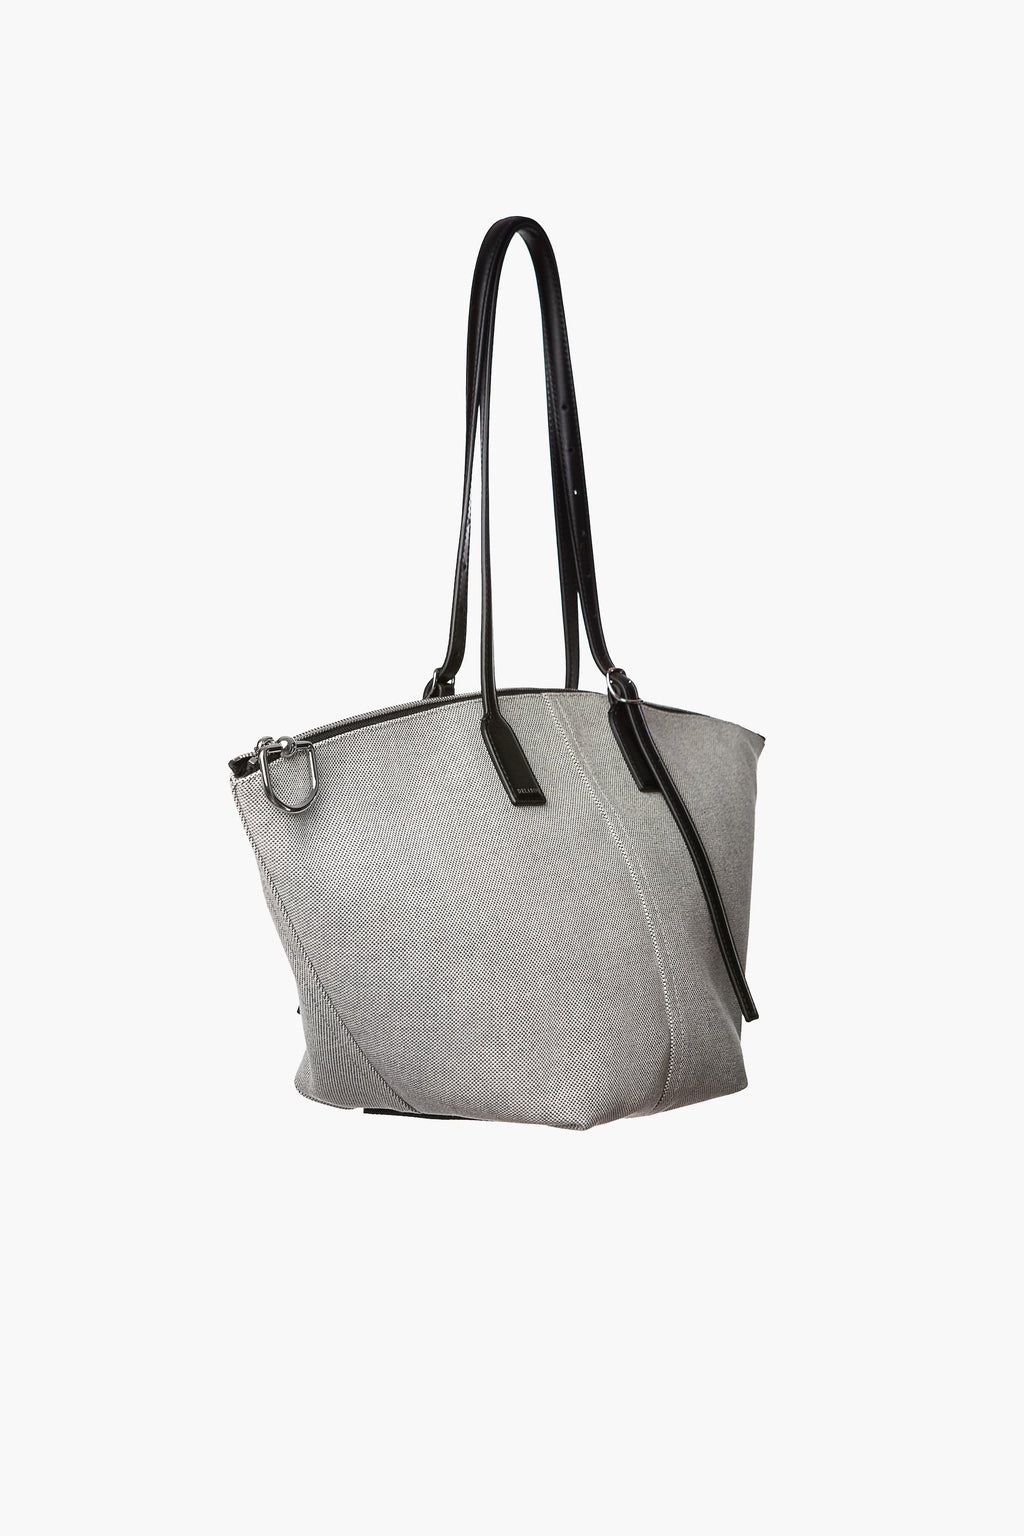 Concierge Tote: Le Classic in Cotton Canvas